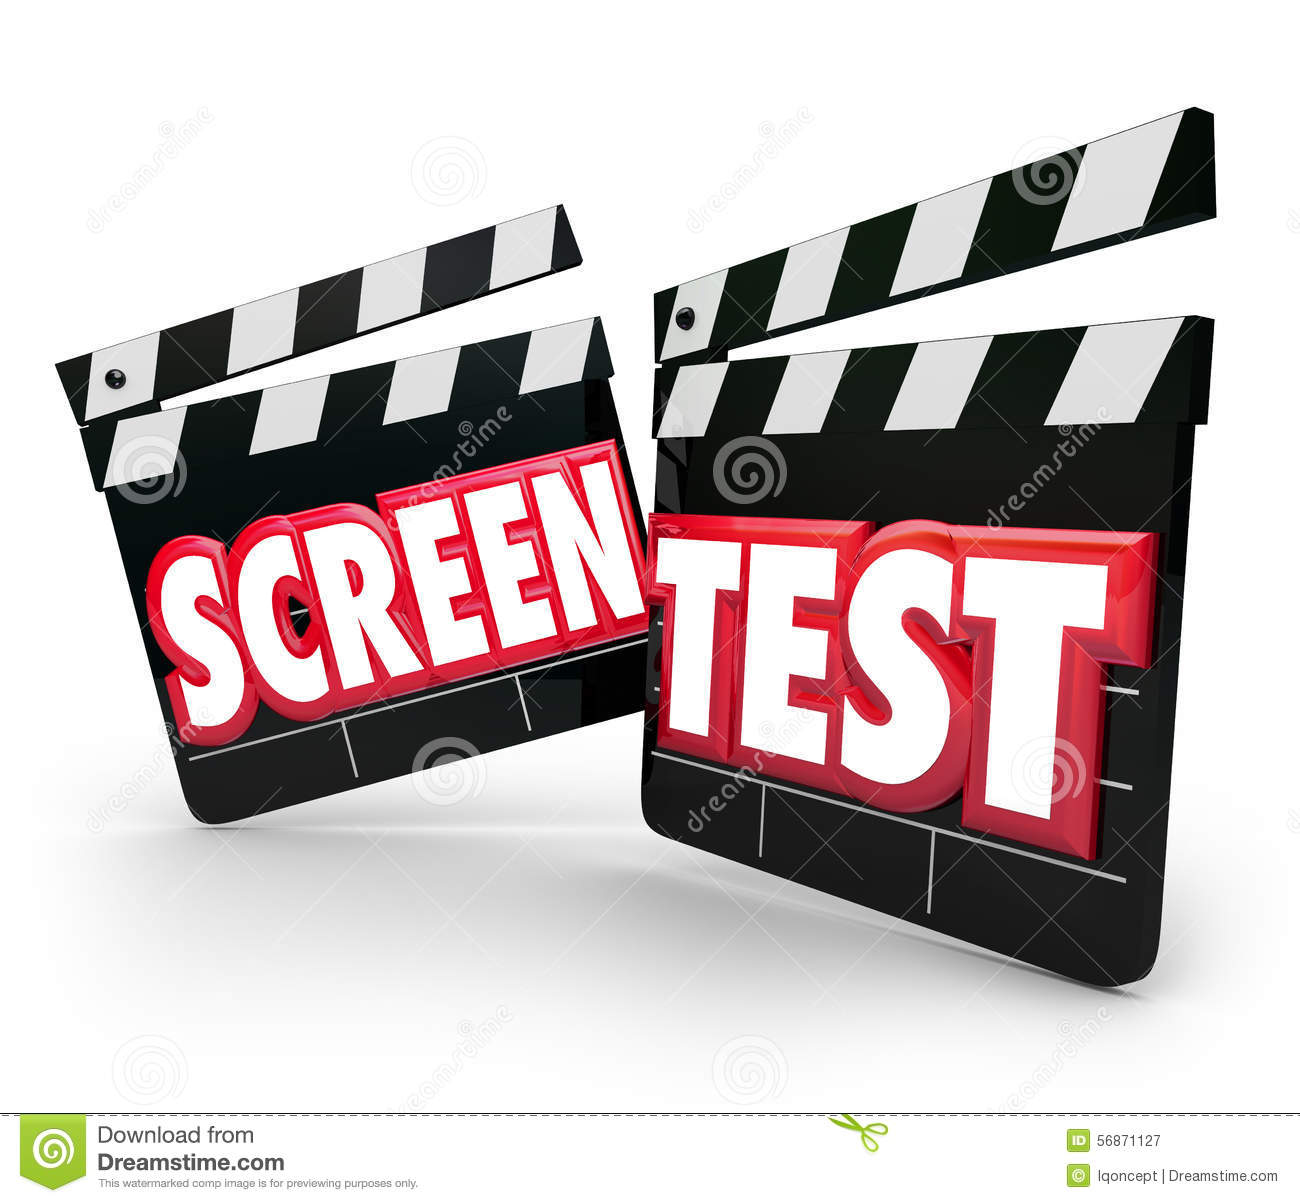 Screen test movie